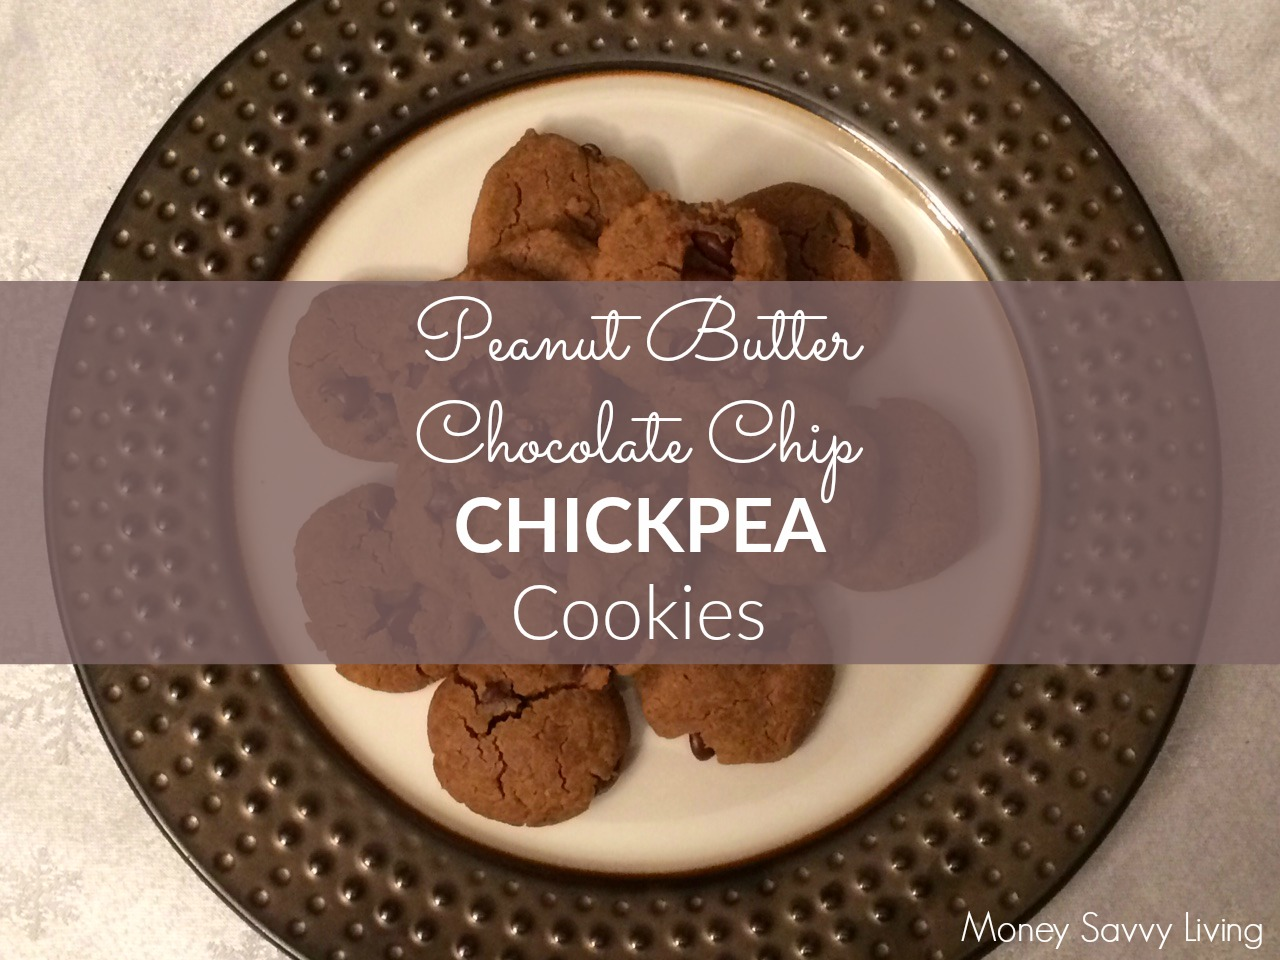 Peanut Butter Chocolate Chip Chickpea Cookies | Money Savvy Living #glutenfree #healthy